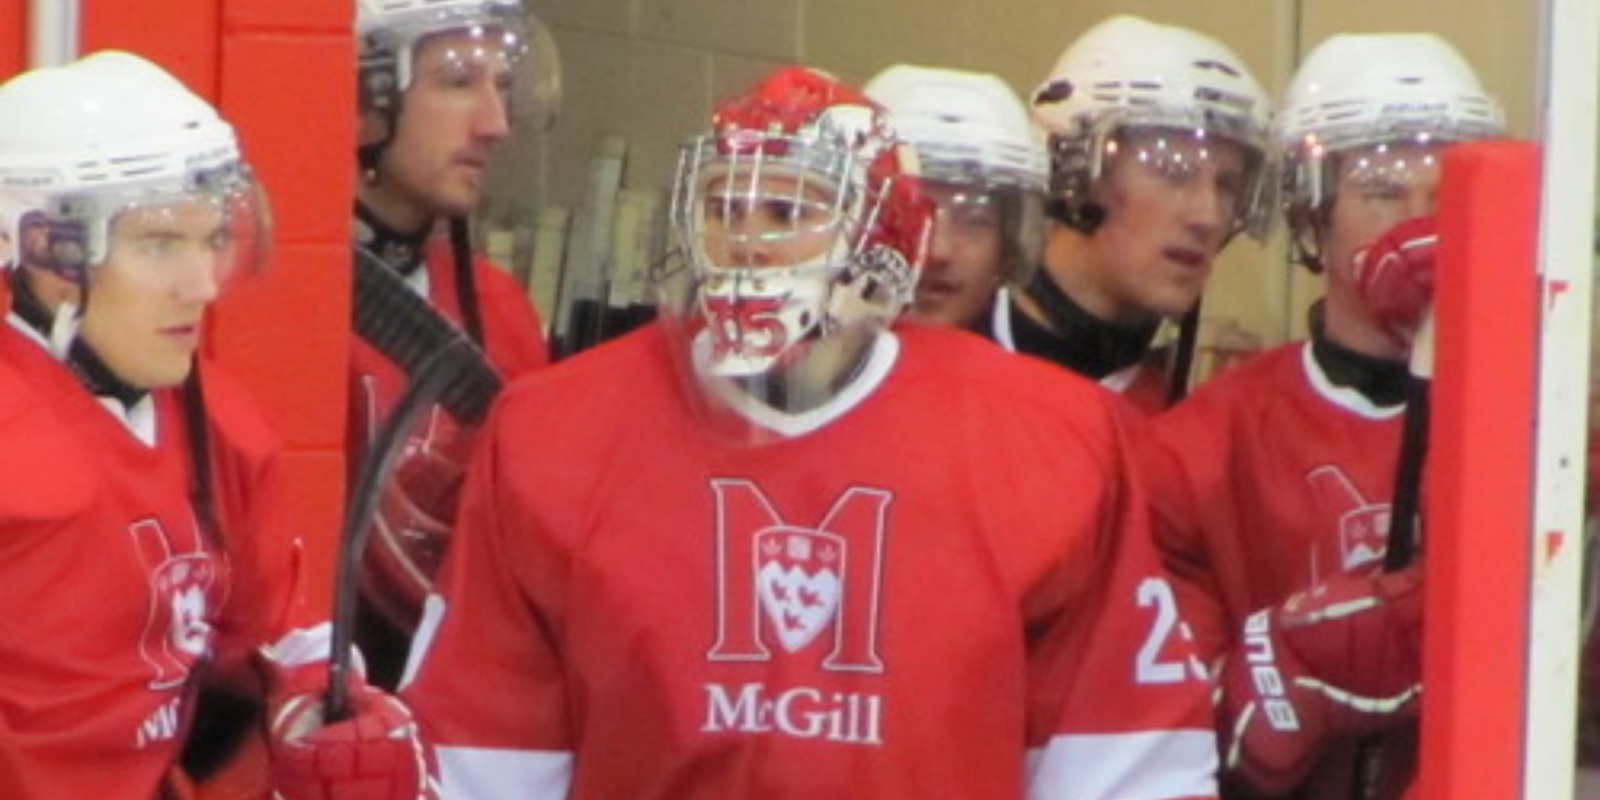 McGill University unveils new name for varsity team after 'RedMen' deemed racist